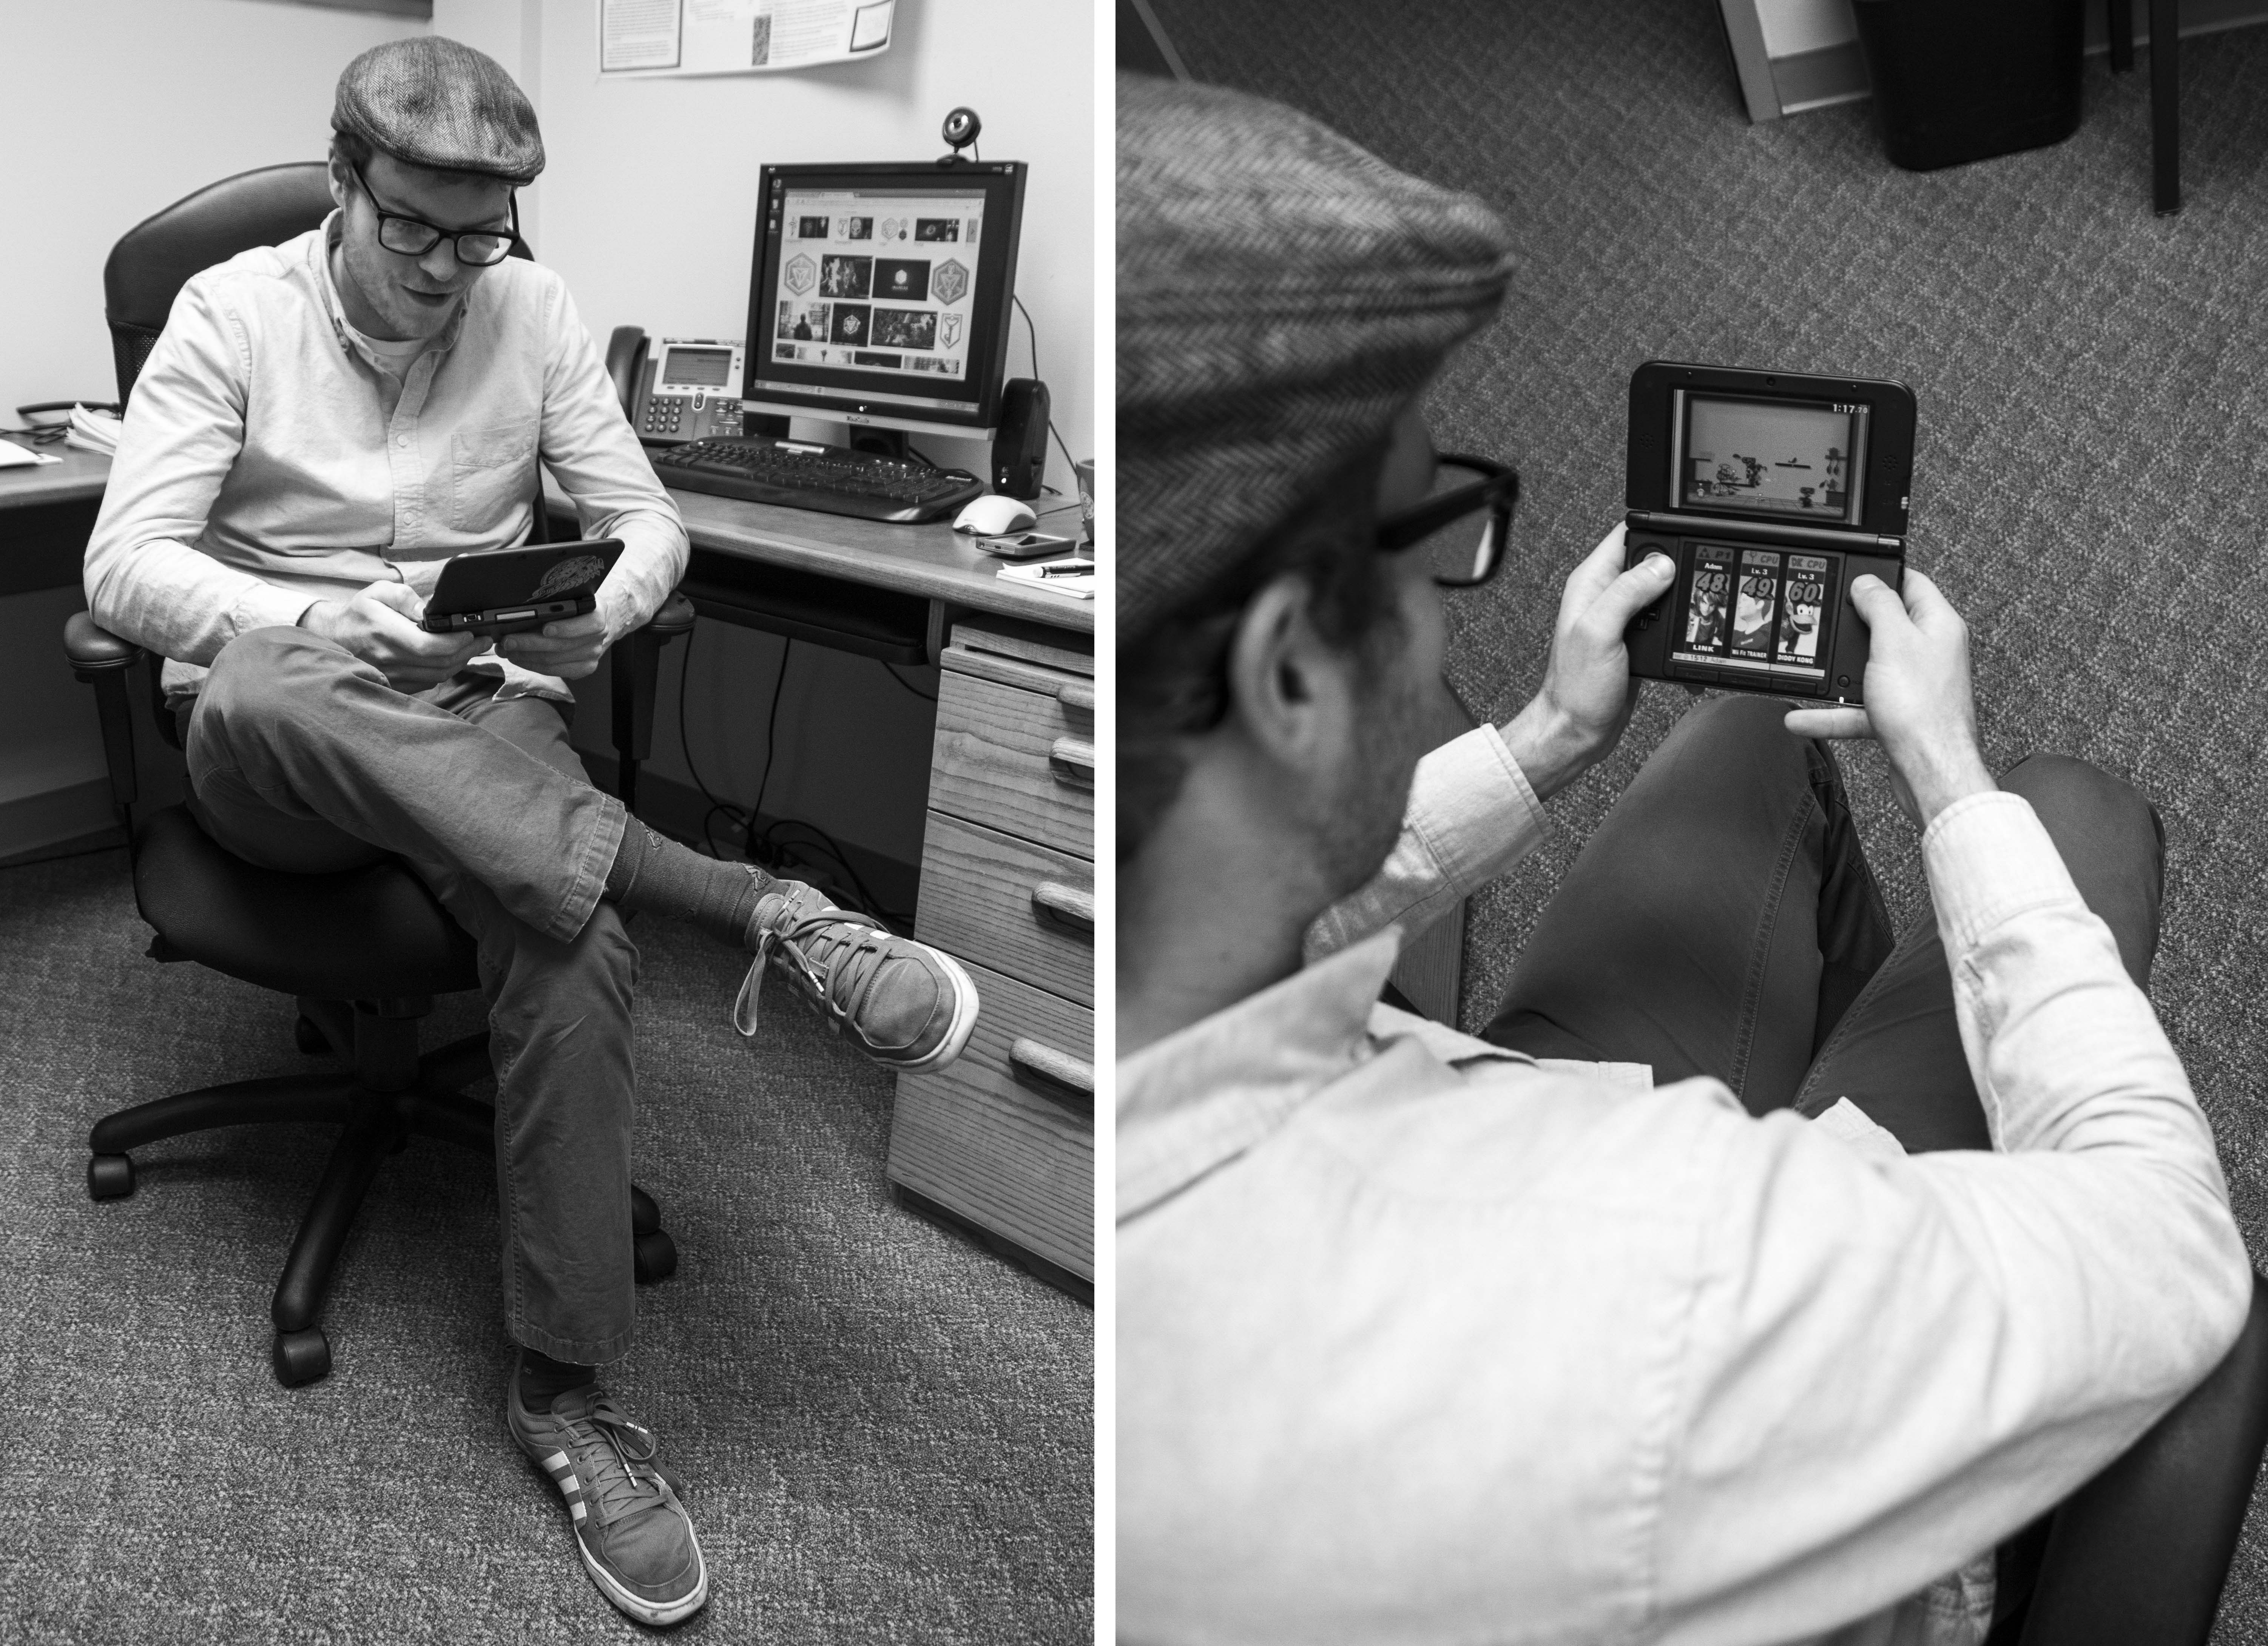 Adam Privitera, a Chemekta psychology instructor, takes a moment to play his Nintendo DS.